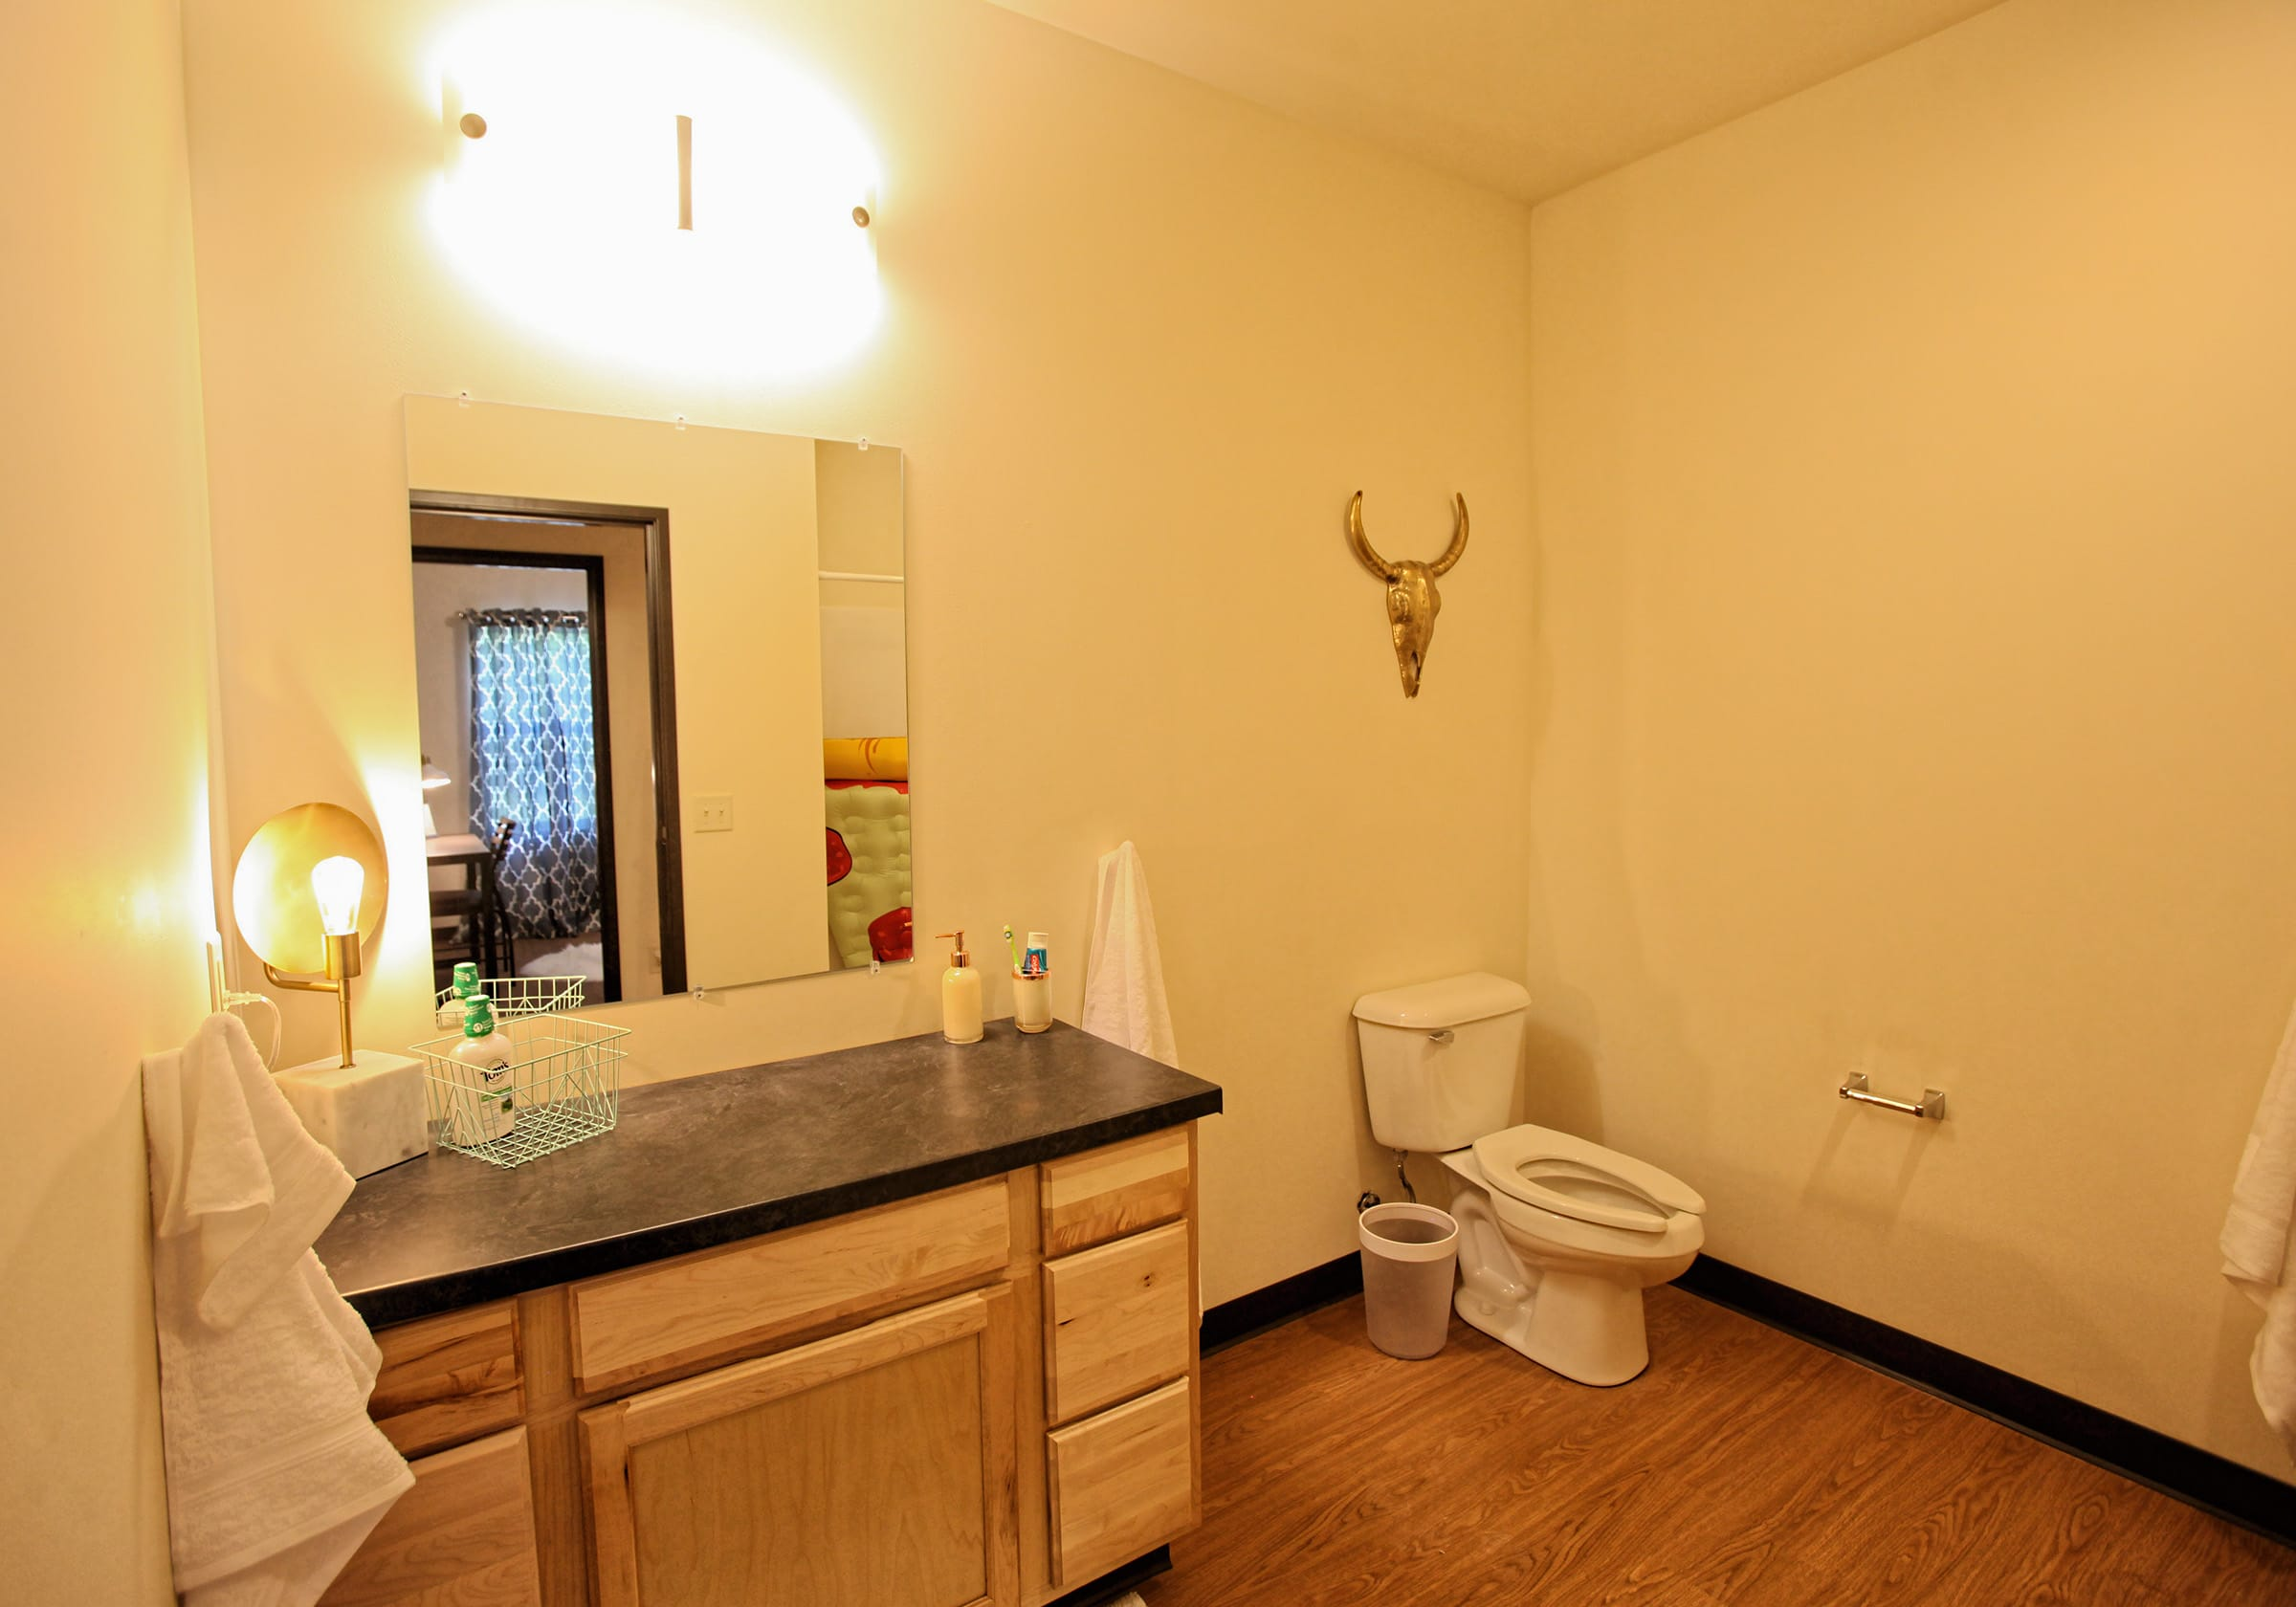 Vue campus bathroom with vanity, toilet and mirrow